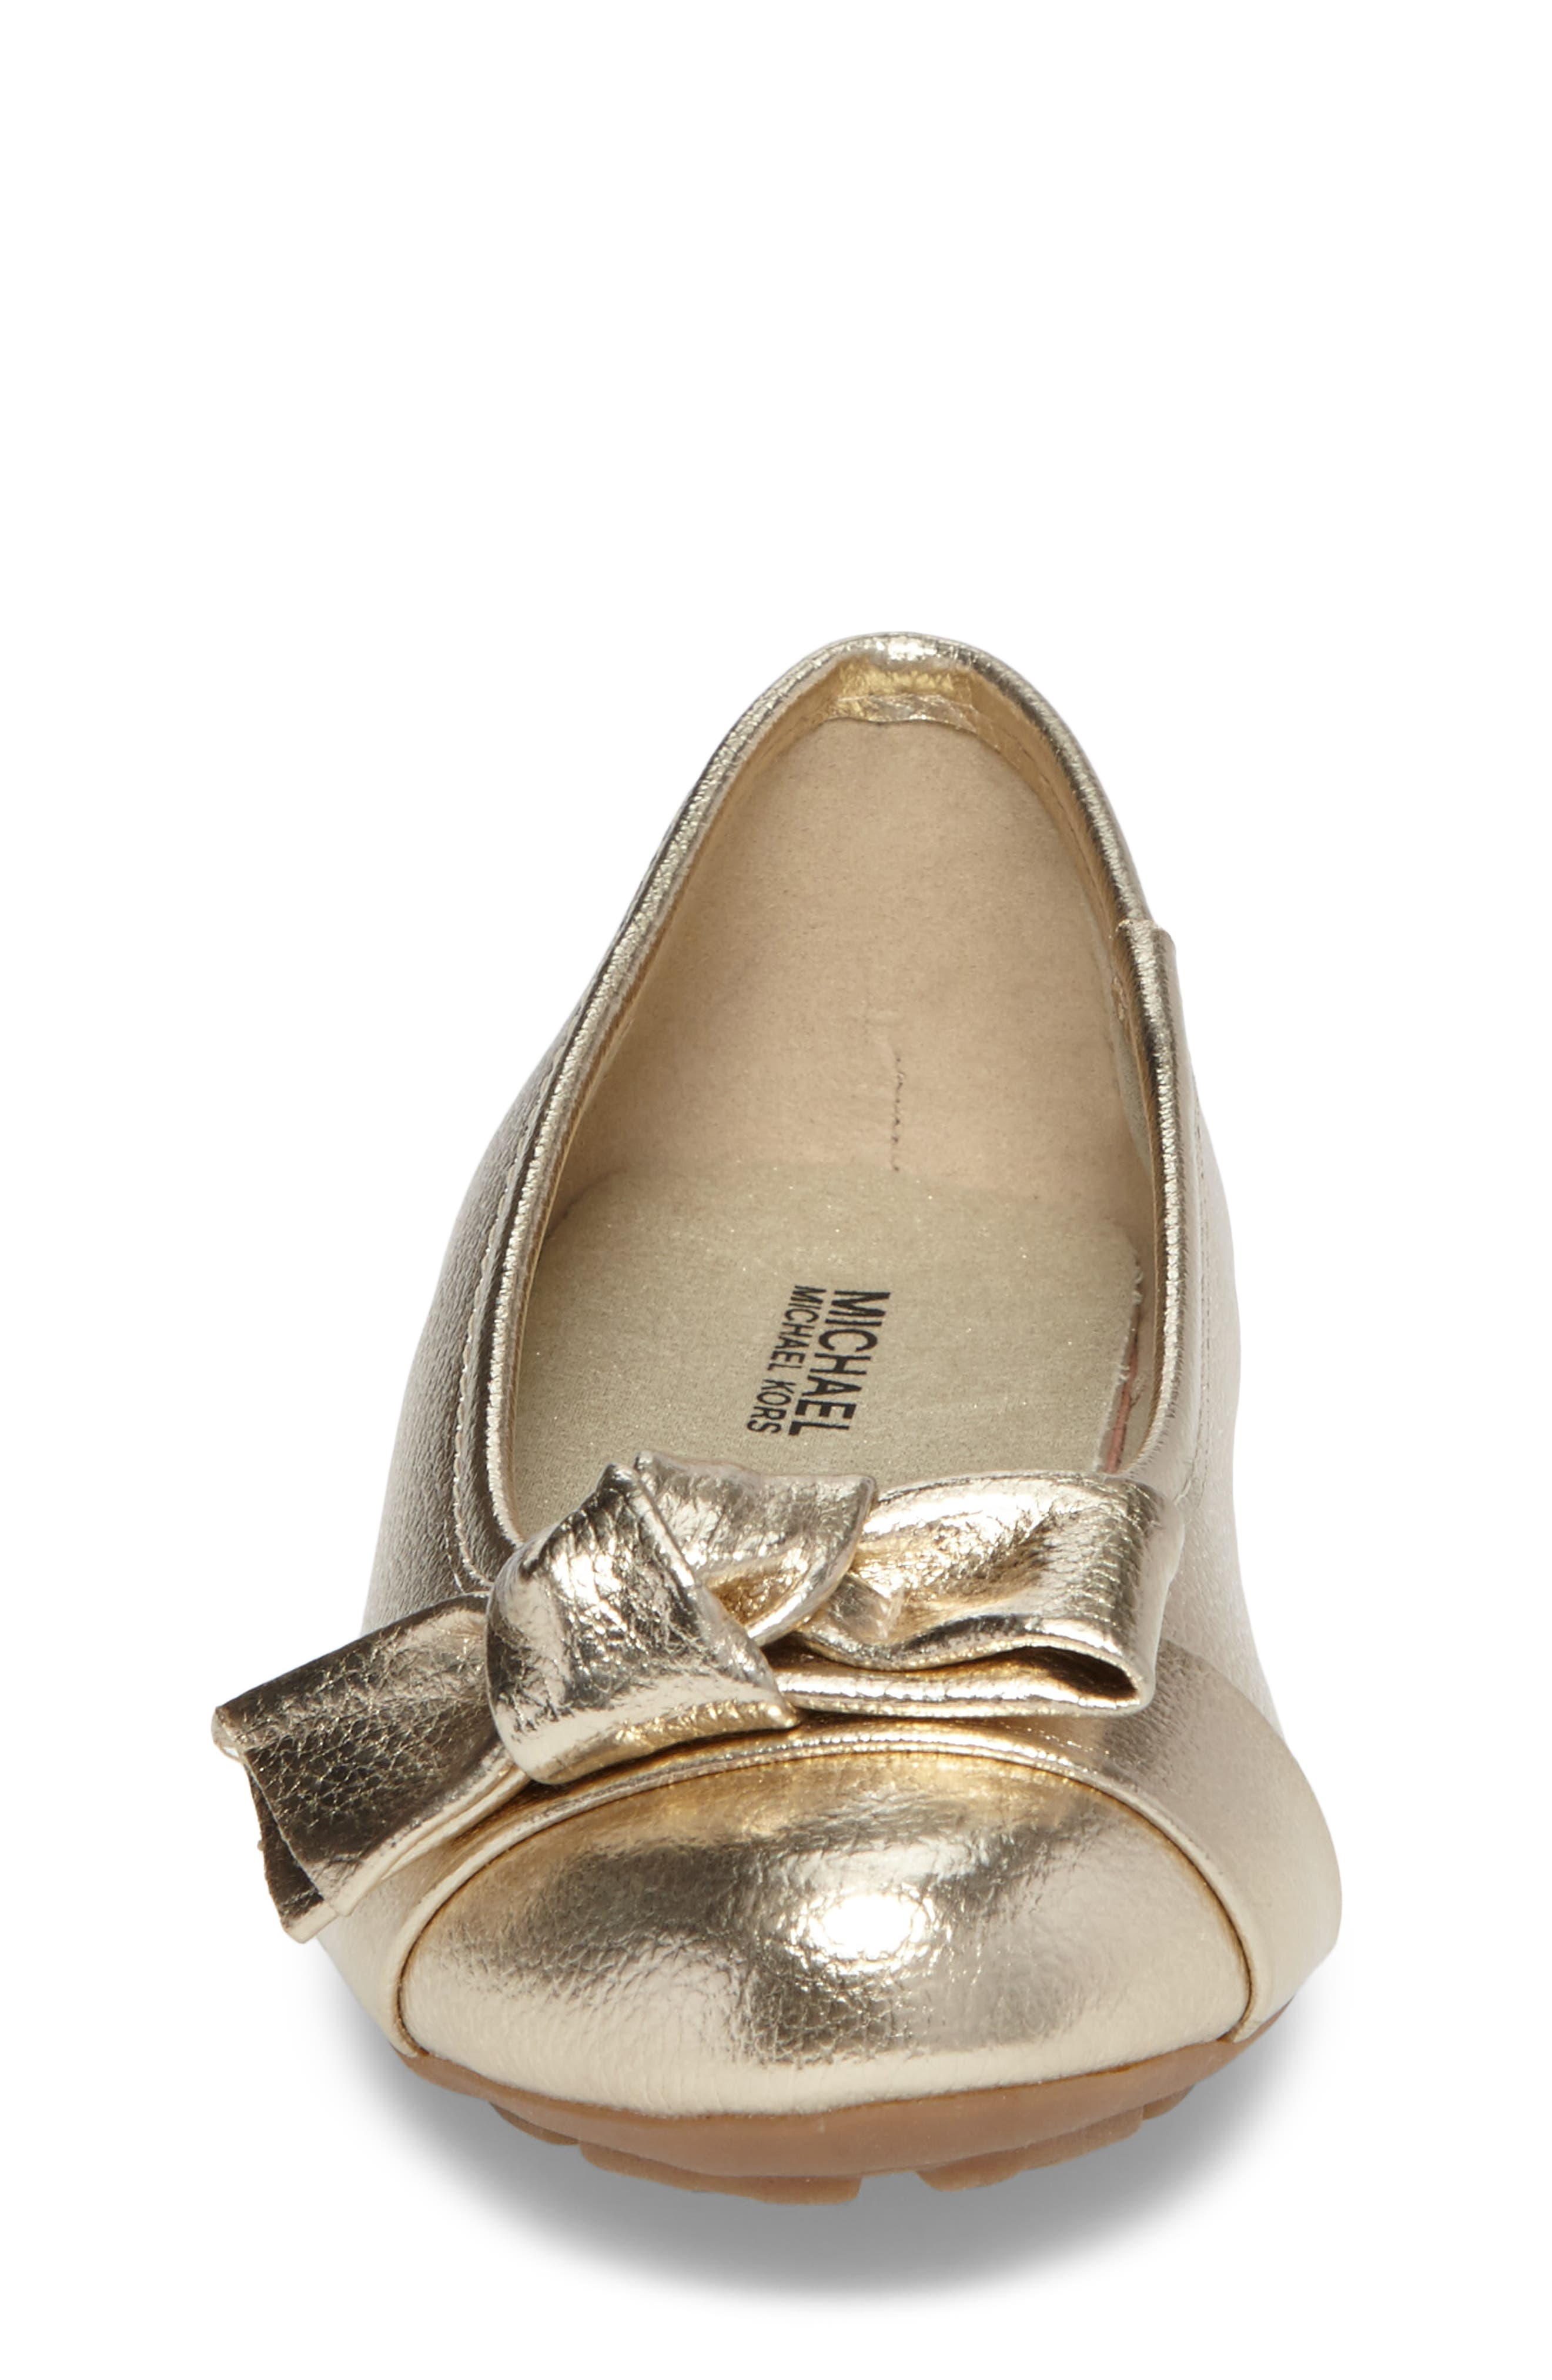 Rover Cora Ballet Flat,                             Alternate thumbnail 4, color,                             Gold